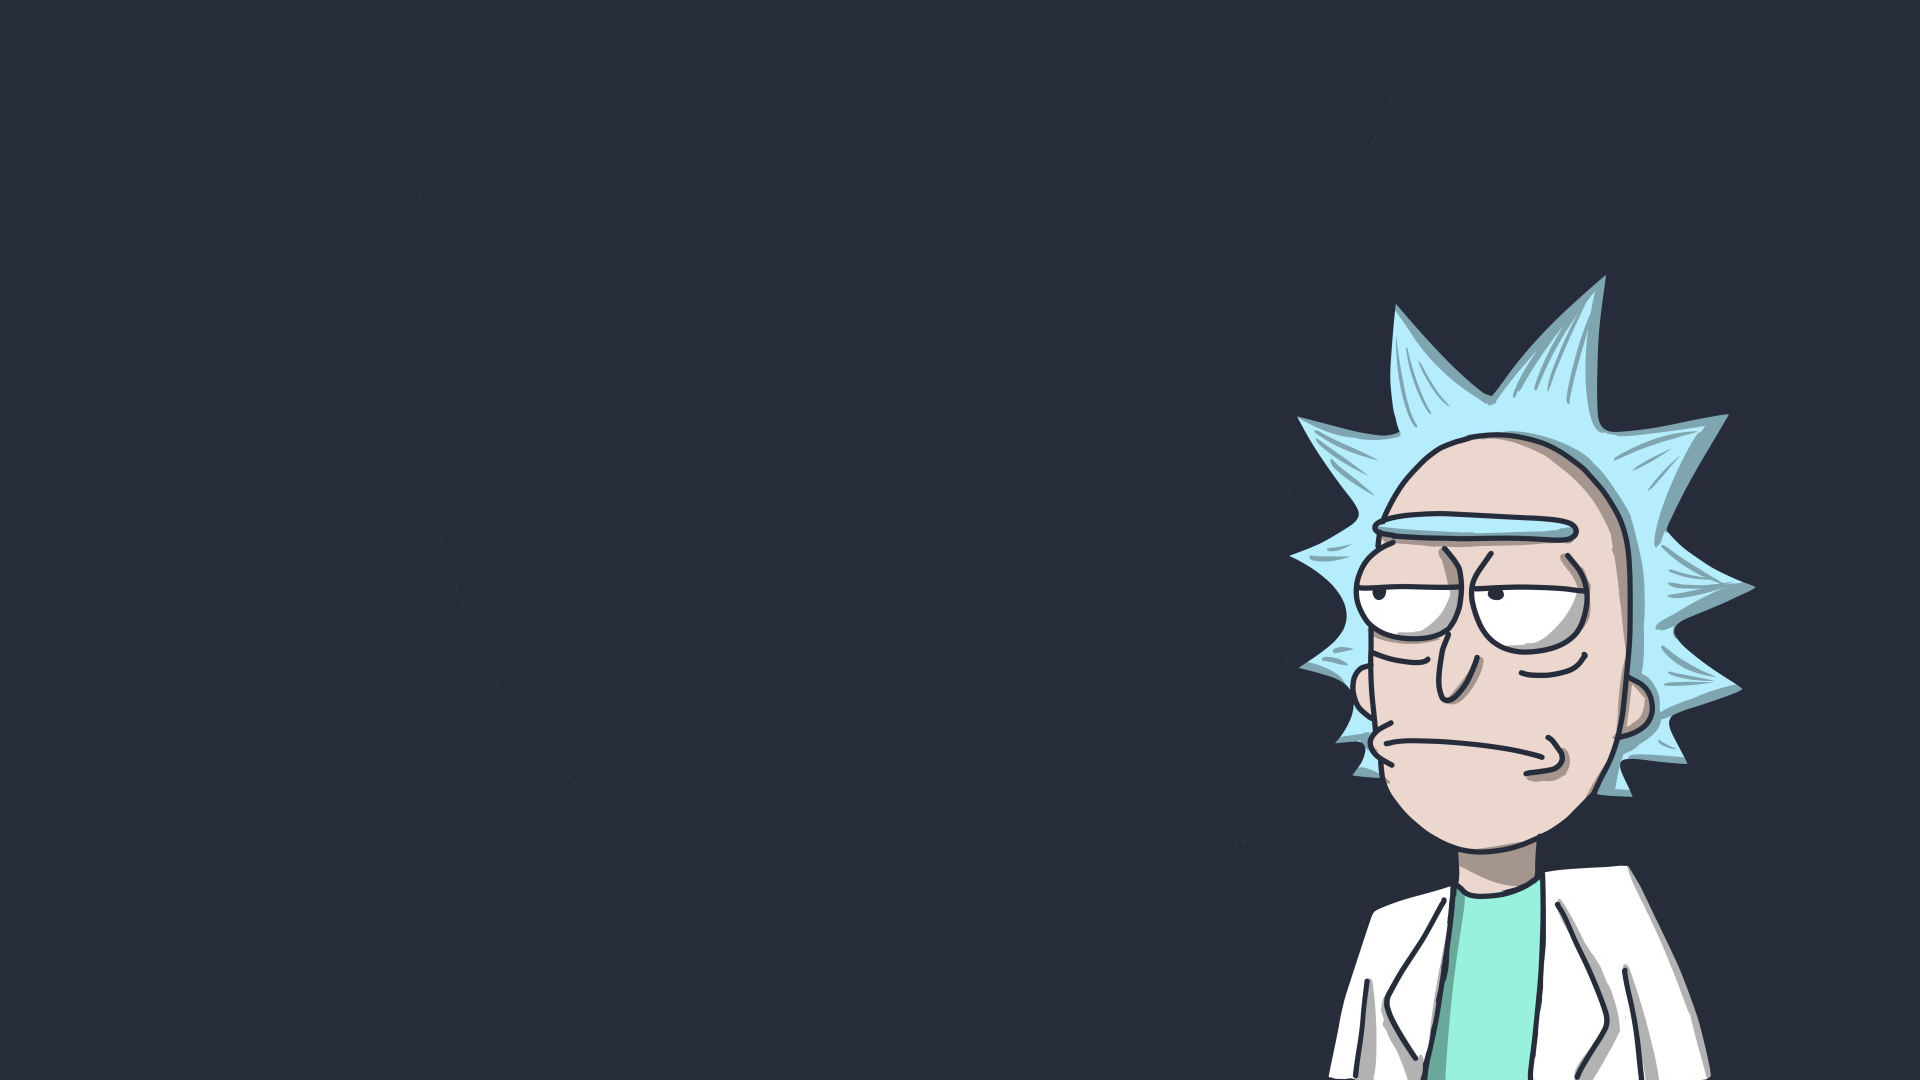 General 1920x1080 Rick and Morty Rick Sanchez TV Adult Swim cartoon cyan simple gray simple background